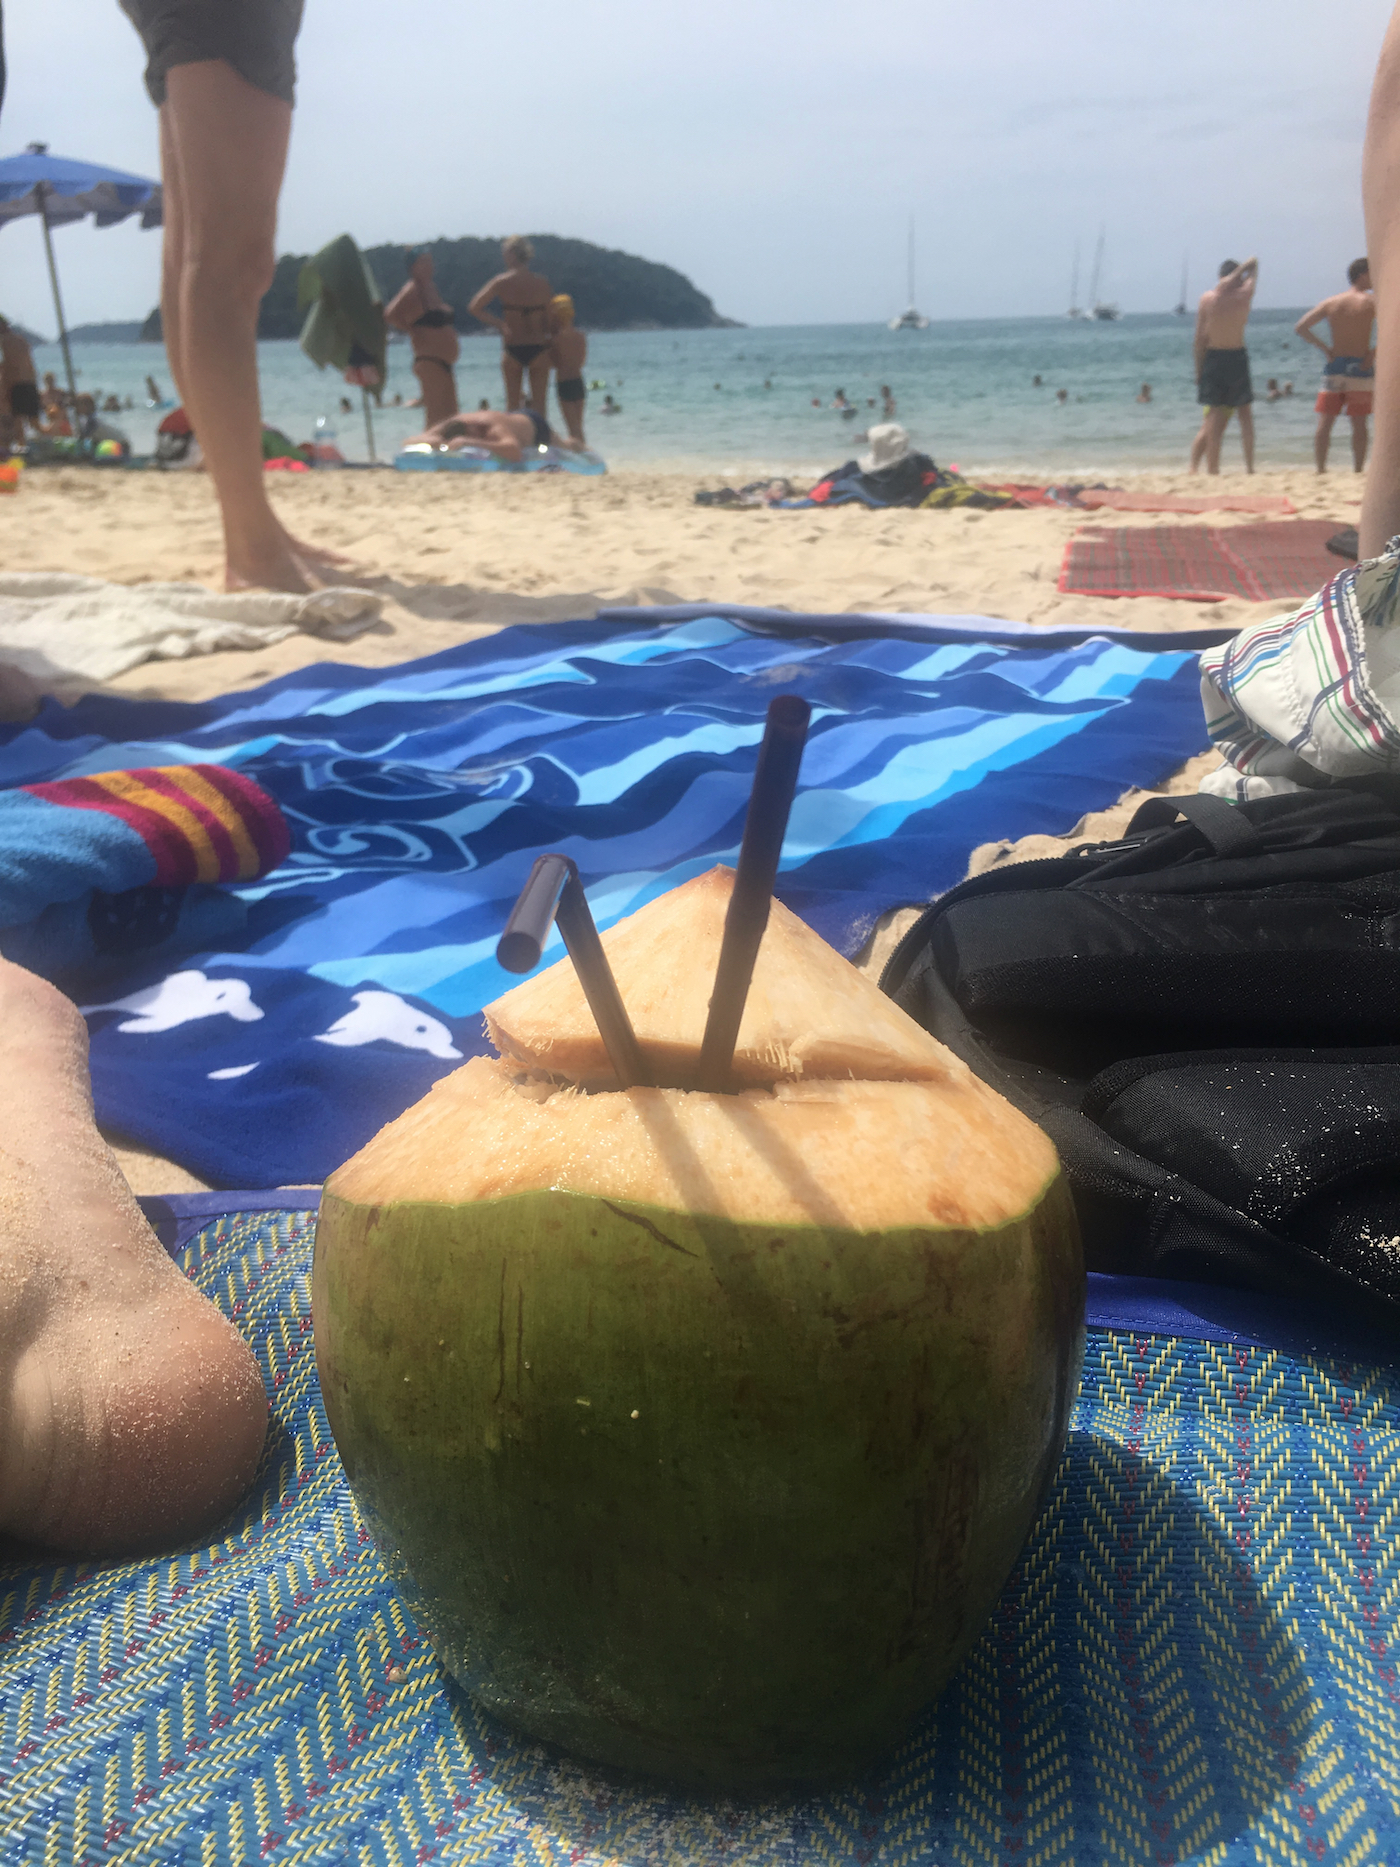 A coconut in Thailand